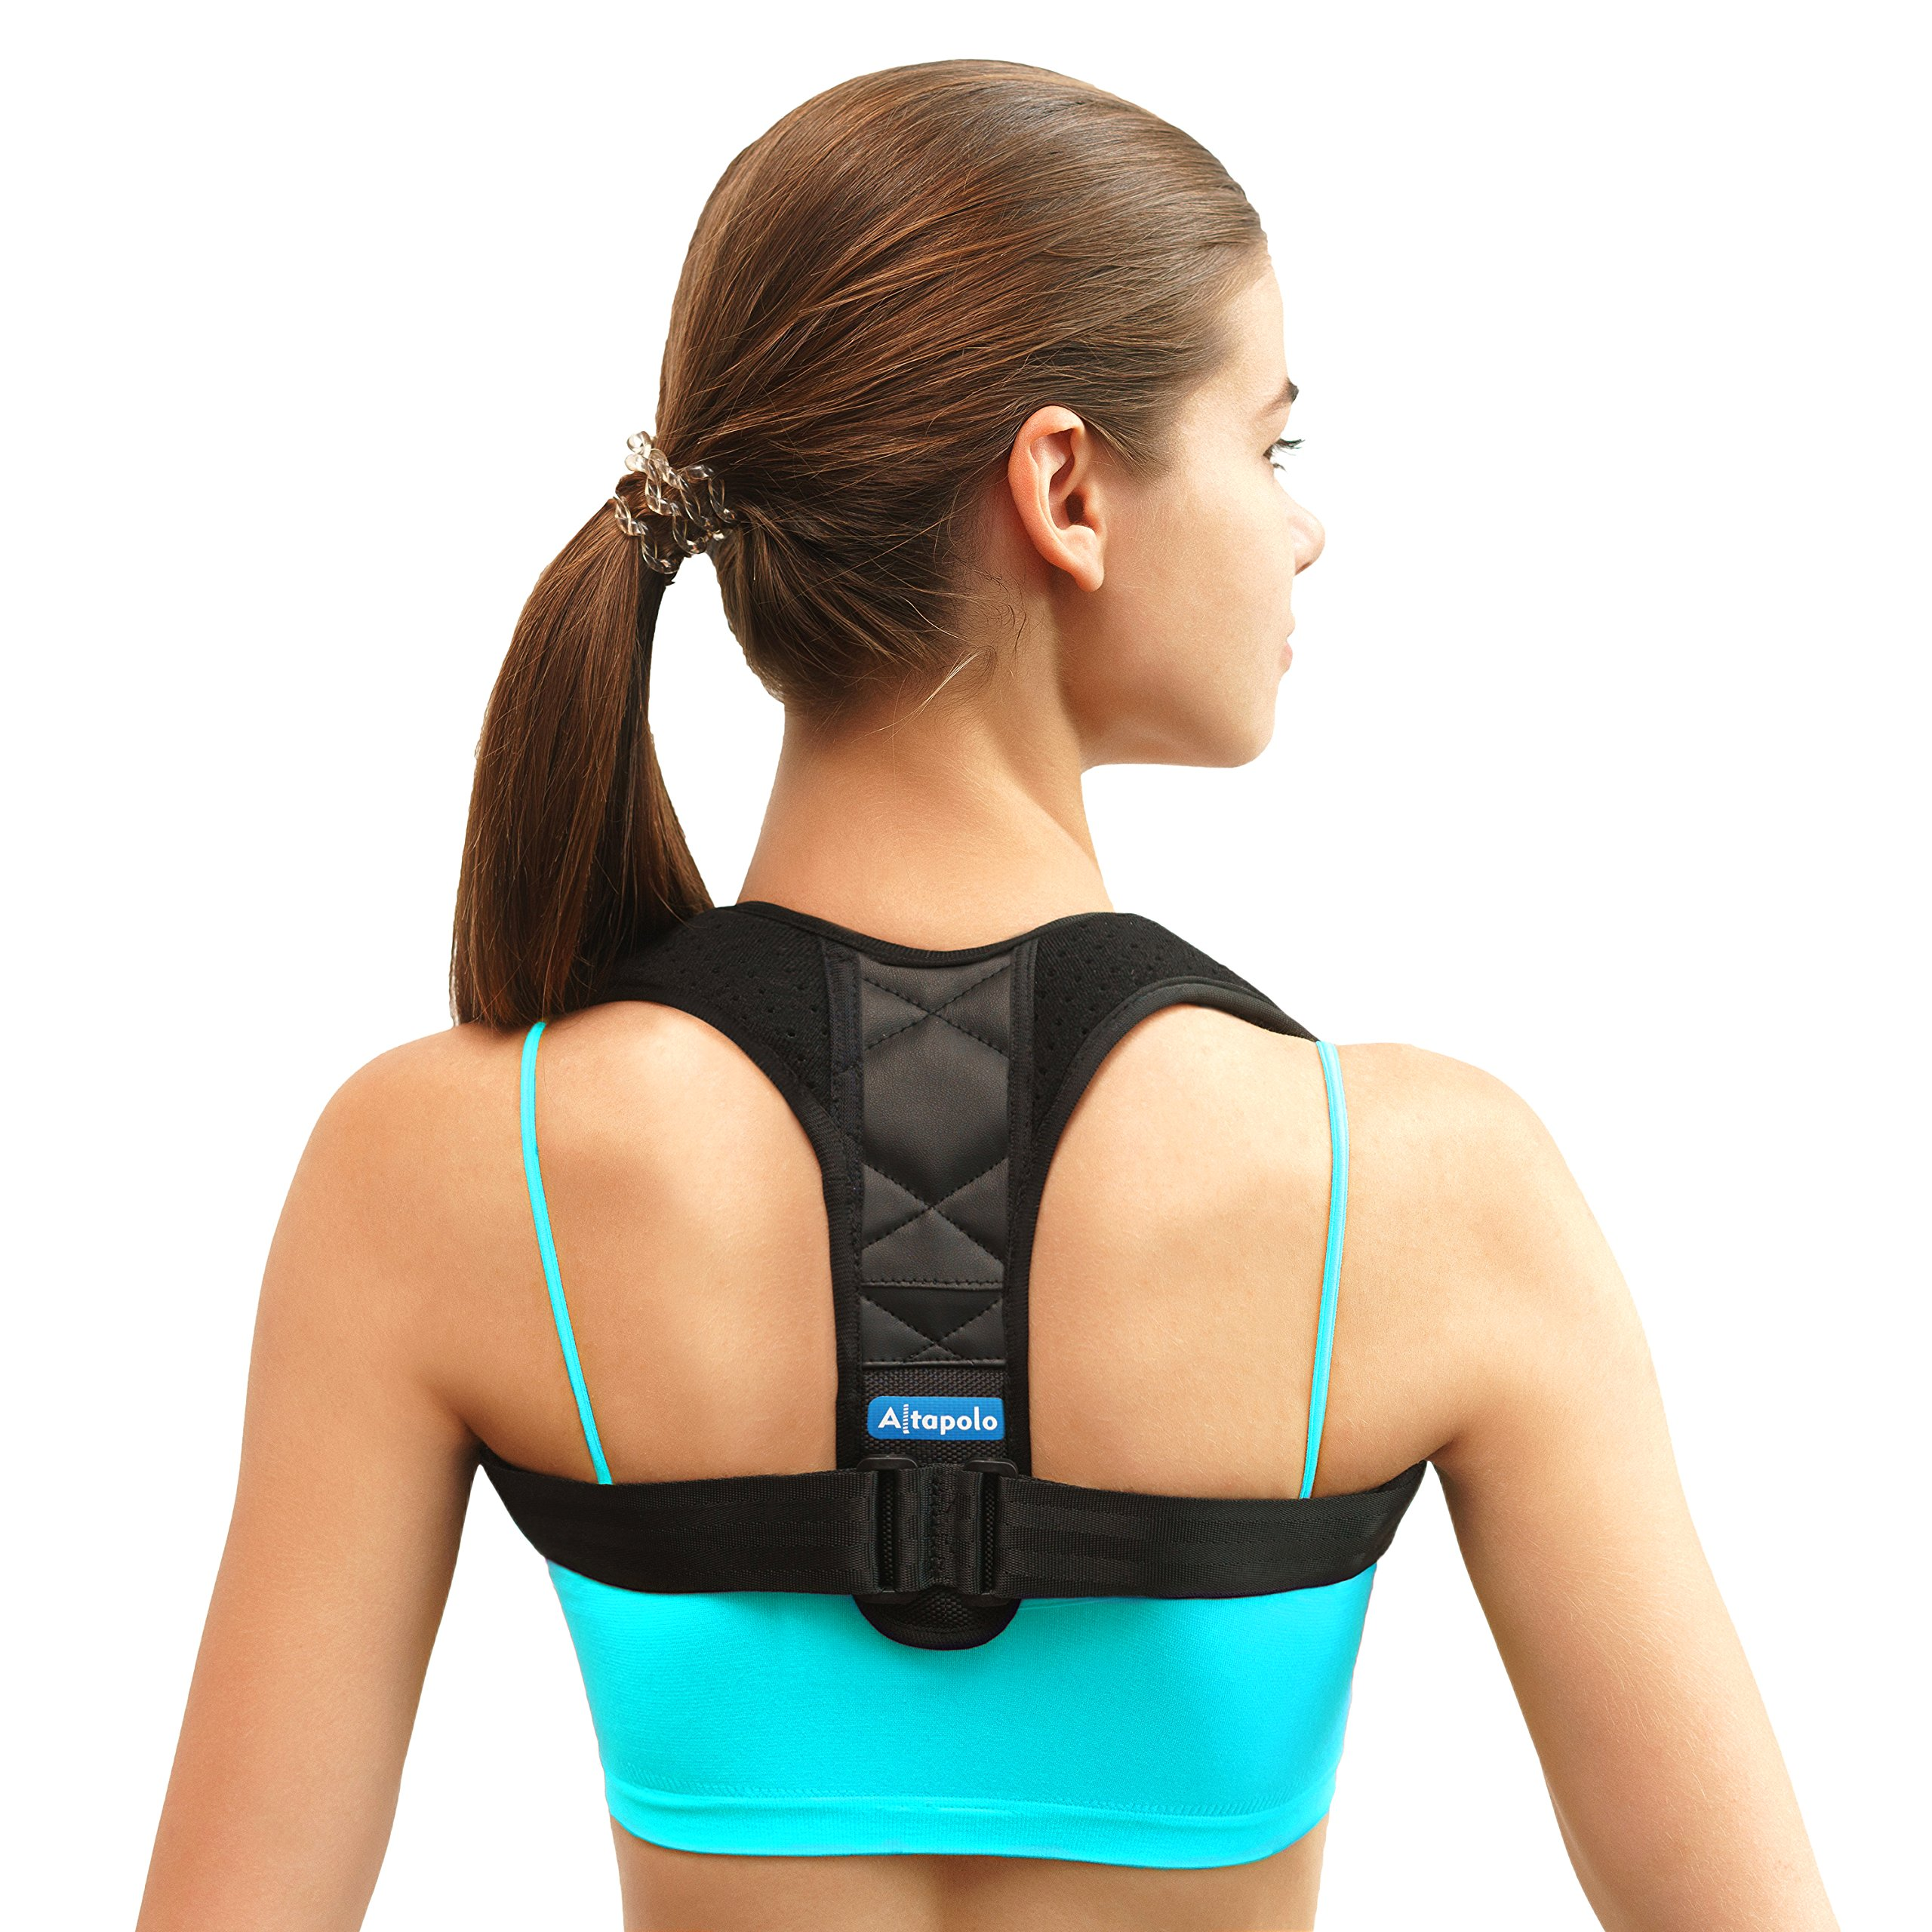 Shoulder Posture Corrector for Men & Women - Adjustable Clavicle Brace and Shoulder Posture Brace for Injury Rehab & Alignment - Improve Back with Figure 8 Shoulder Brace for Slouching & Hunching